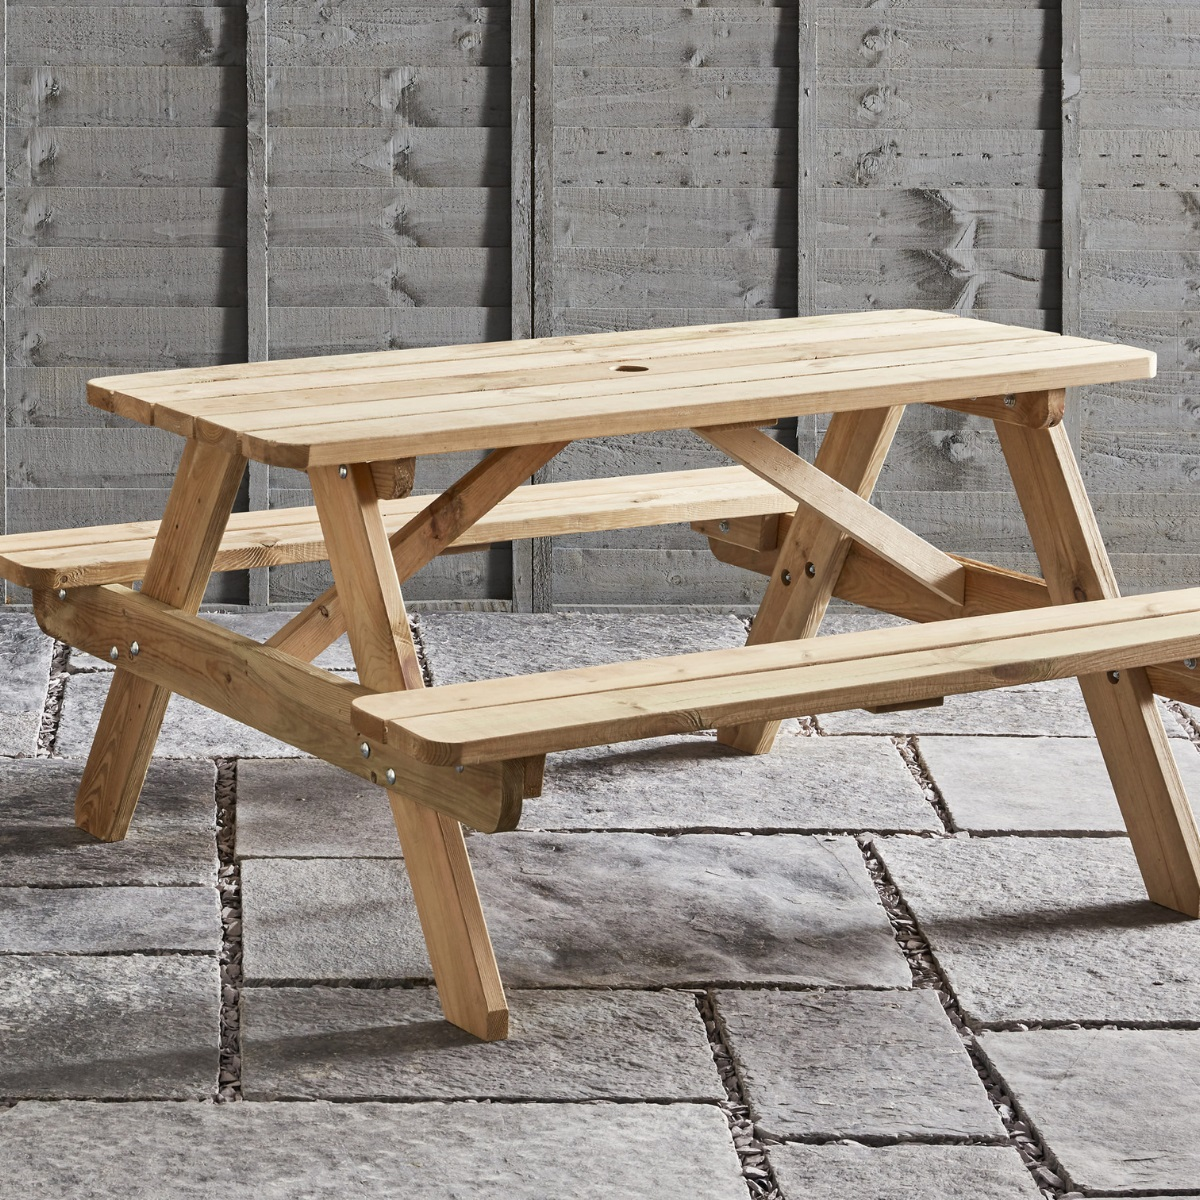 commercial wooden a frame picnic table